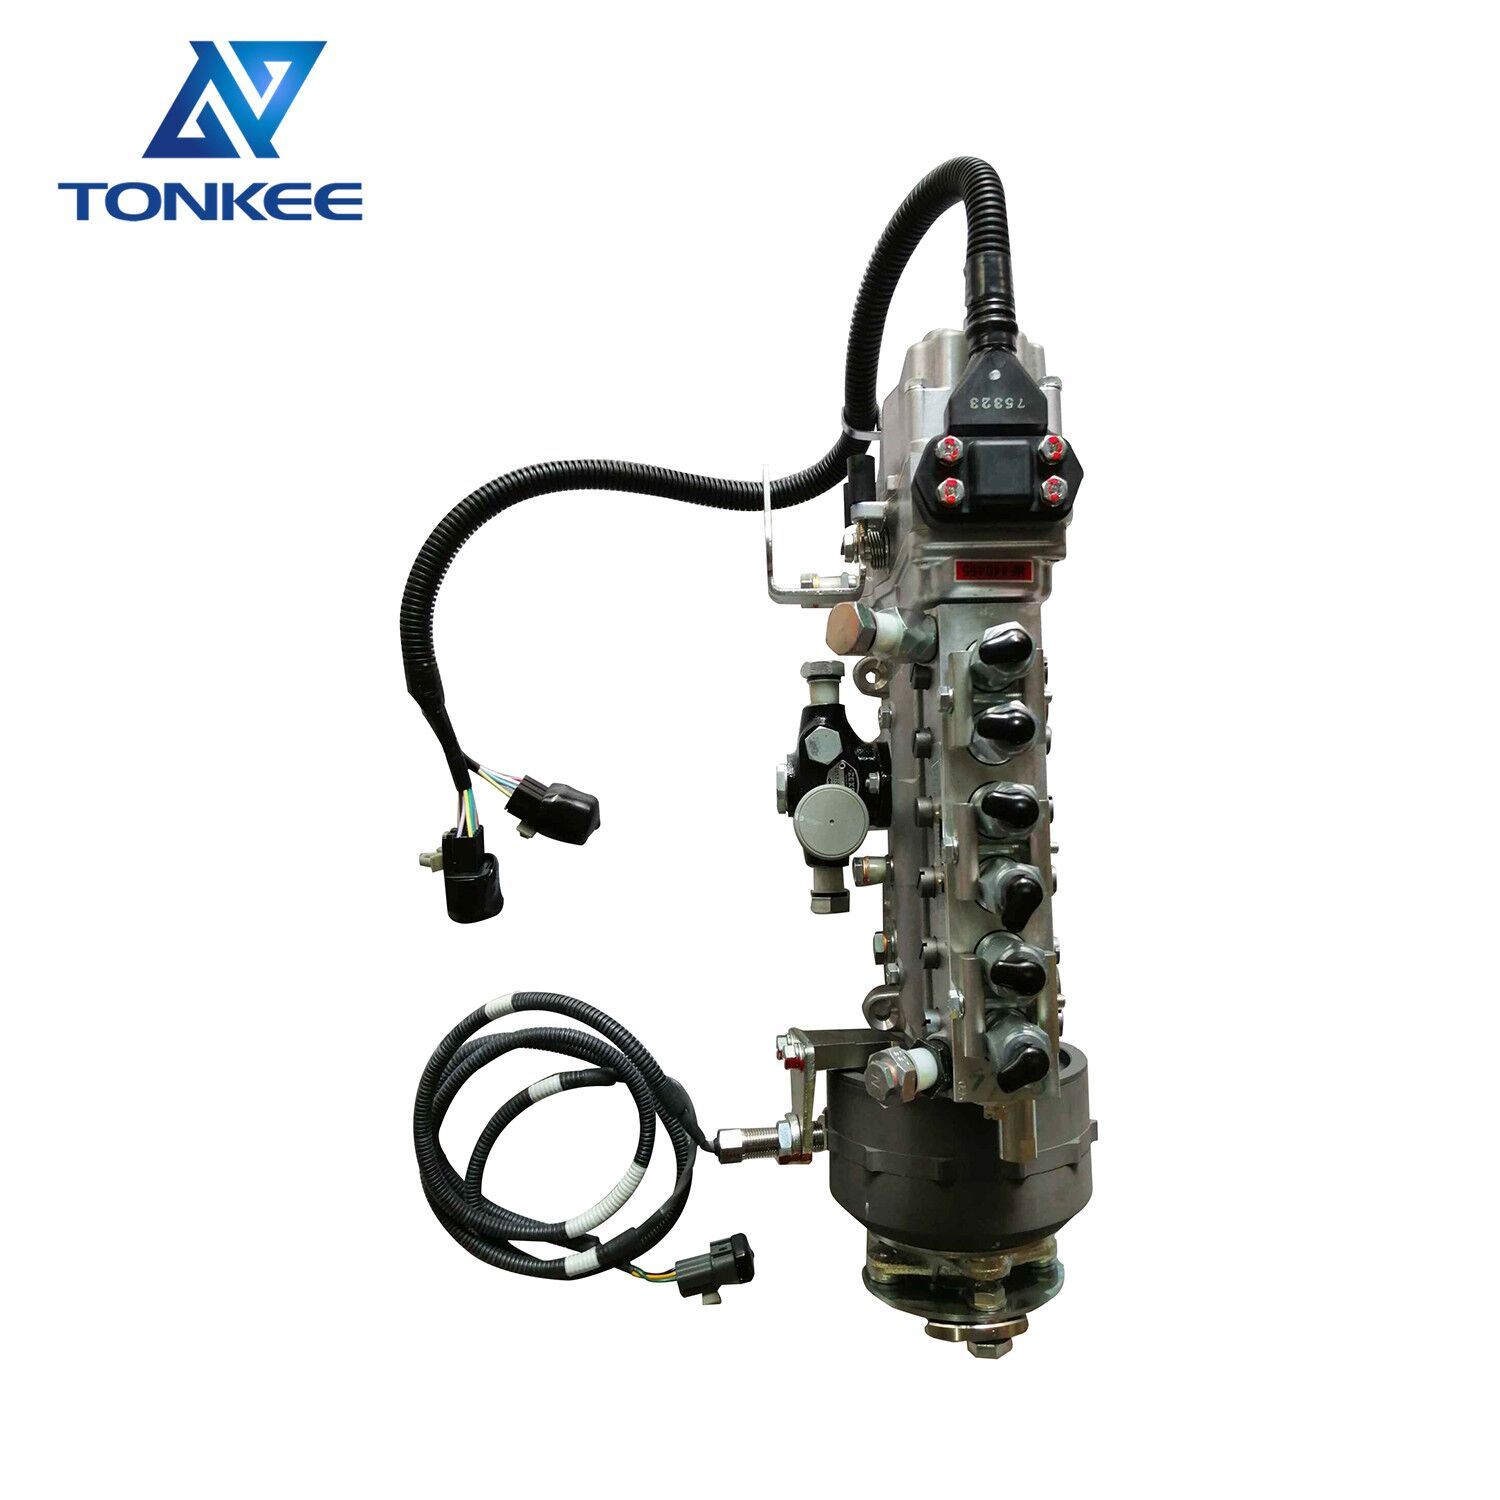 NEW SK330-6E SK350-6E 6D16 6D16T engine fuel injection pump ME440455 101608-6353 101060-6790 49-54 N•M ZEXEL diesel injection pump electric control for KOBELCO excavation